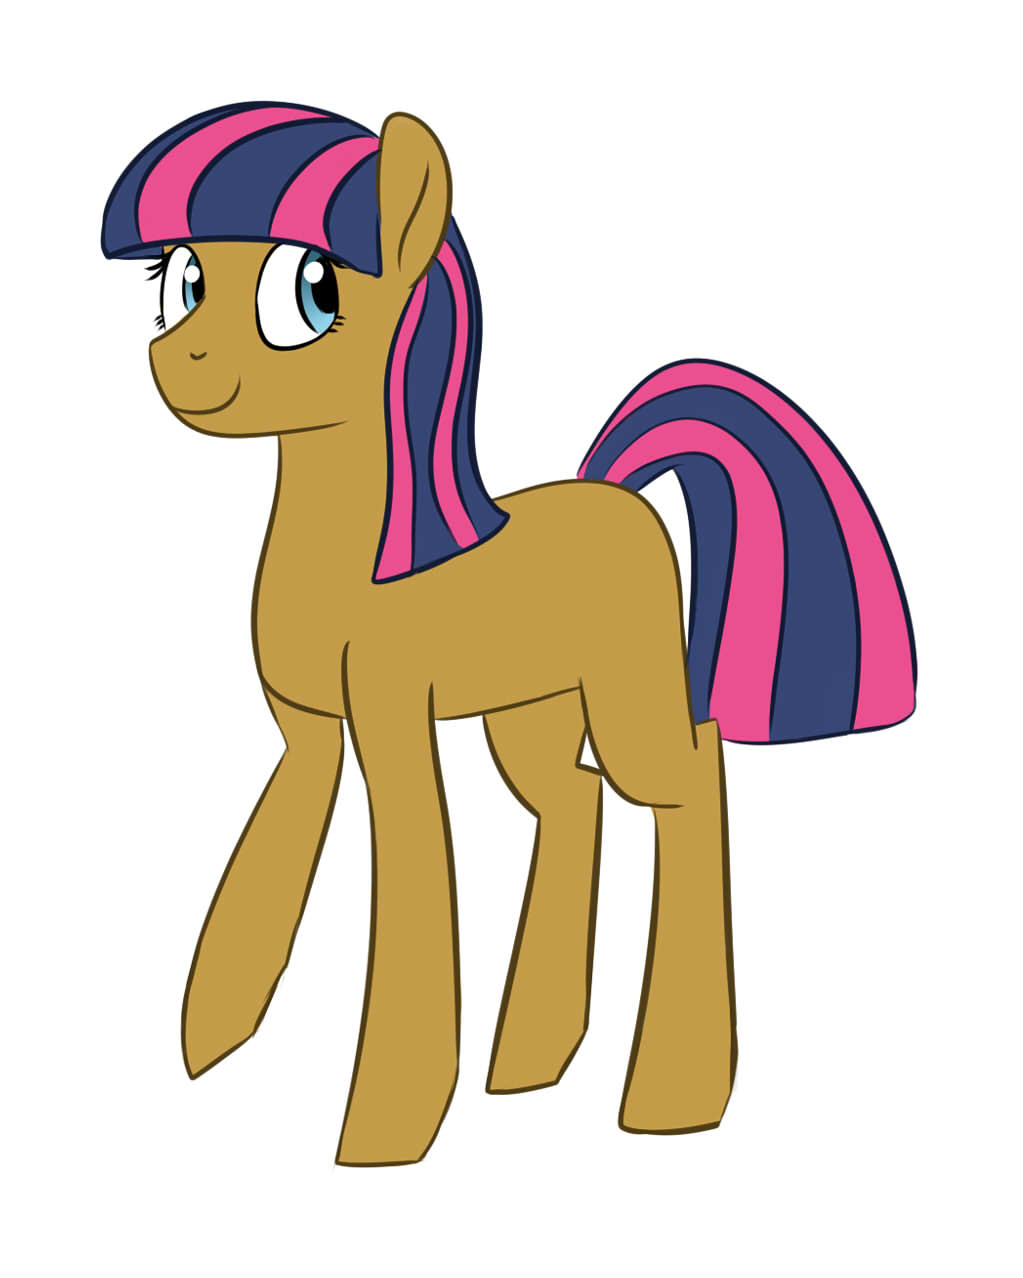 MLP next gen: Chocolate Rain by OSBKannora on DeviantArt